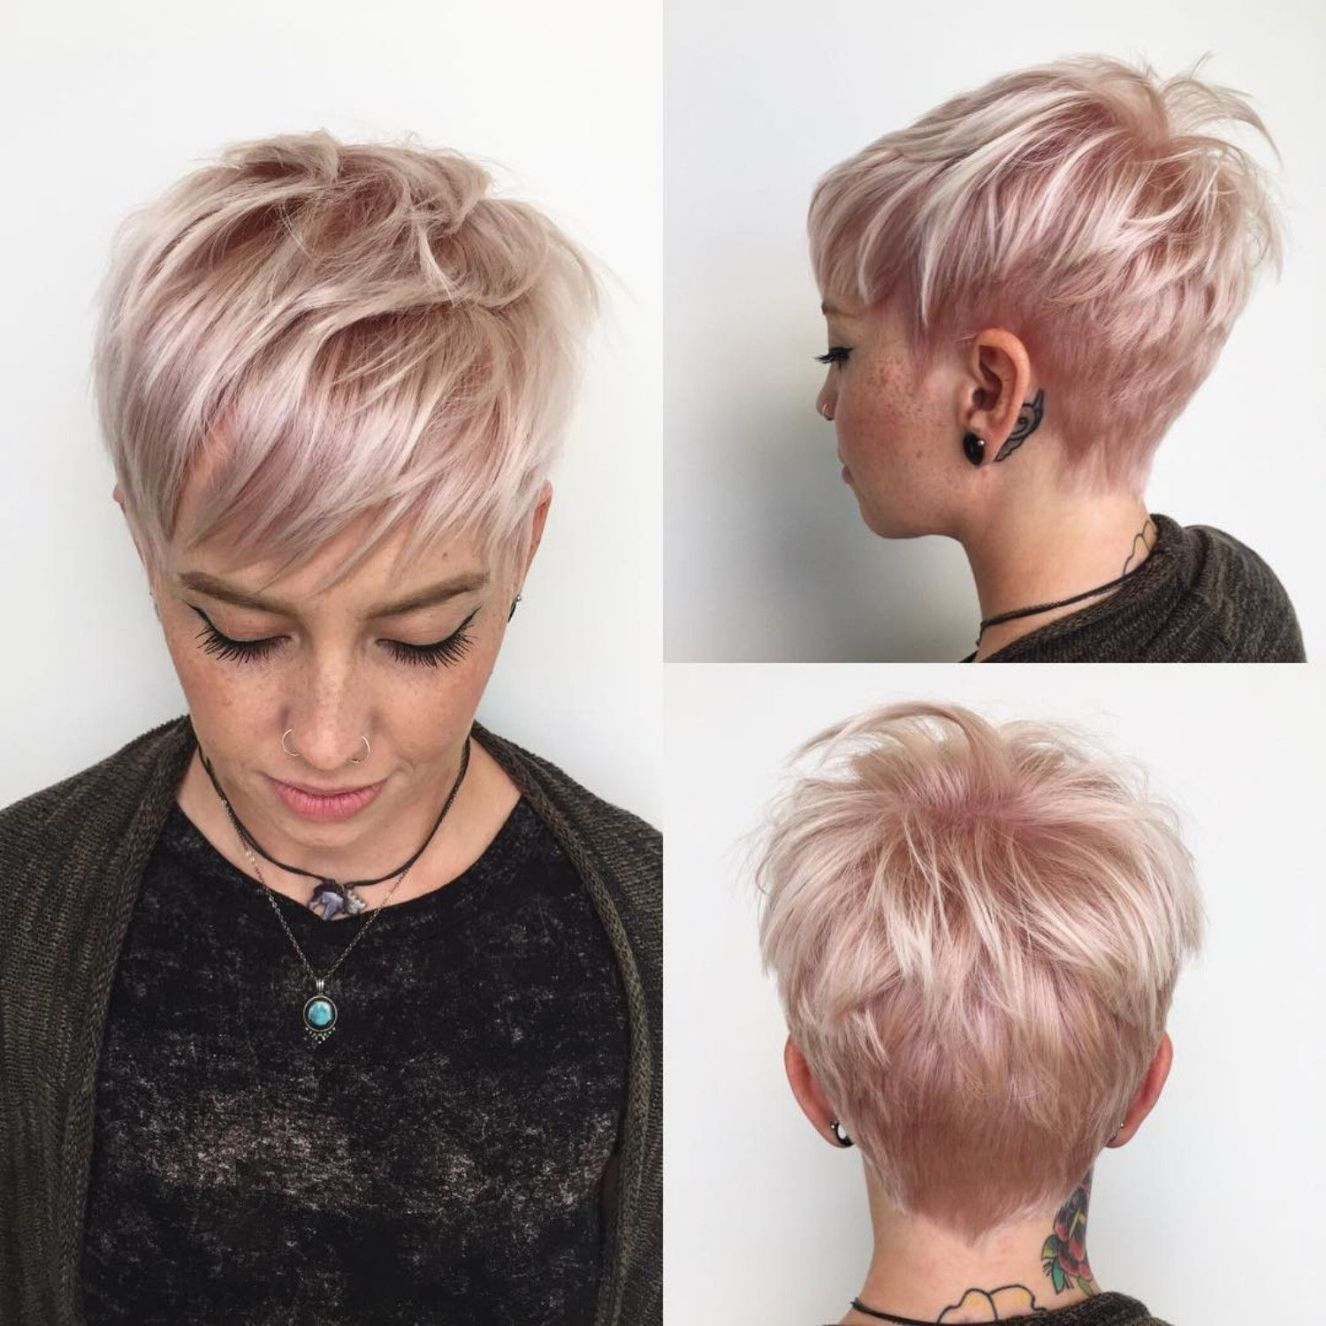 11 Mind-Blowing Short Hairstyles for Fine Hair  Fine hair, Hair